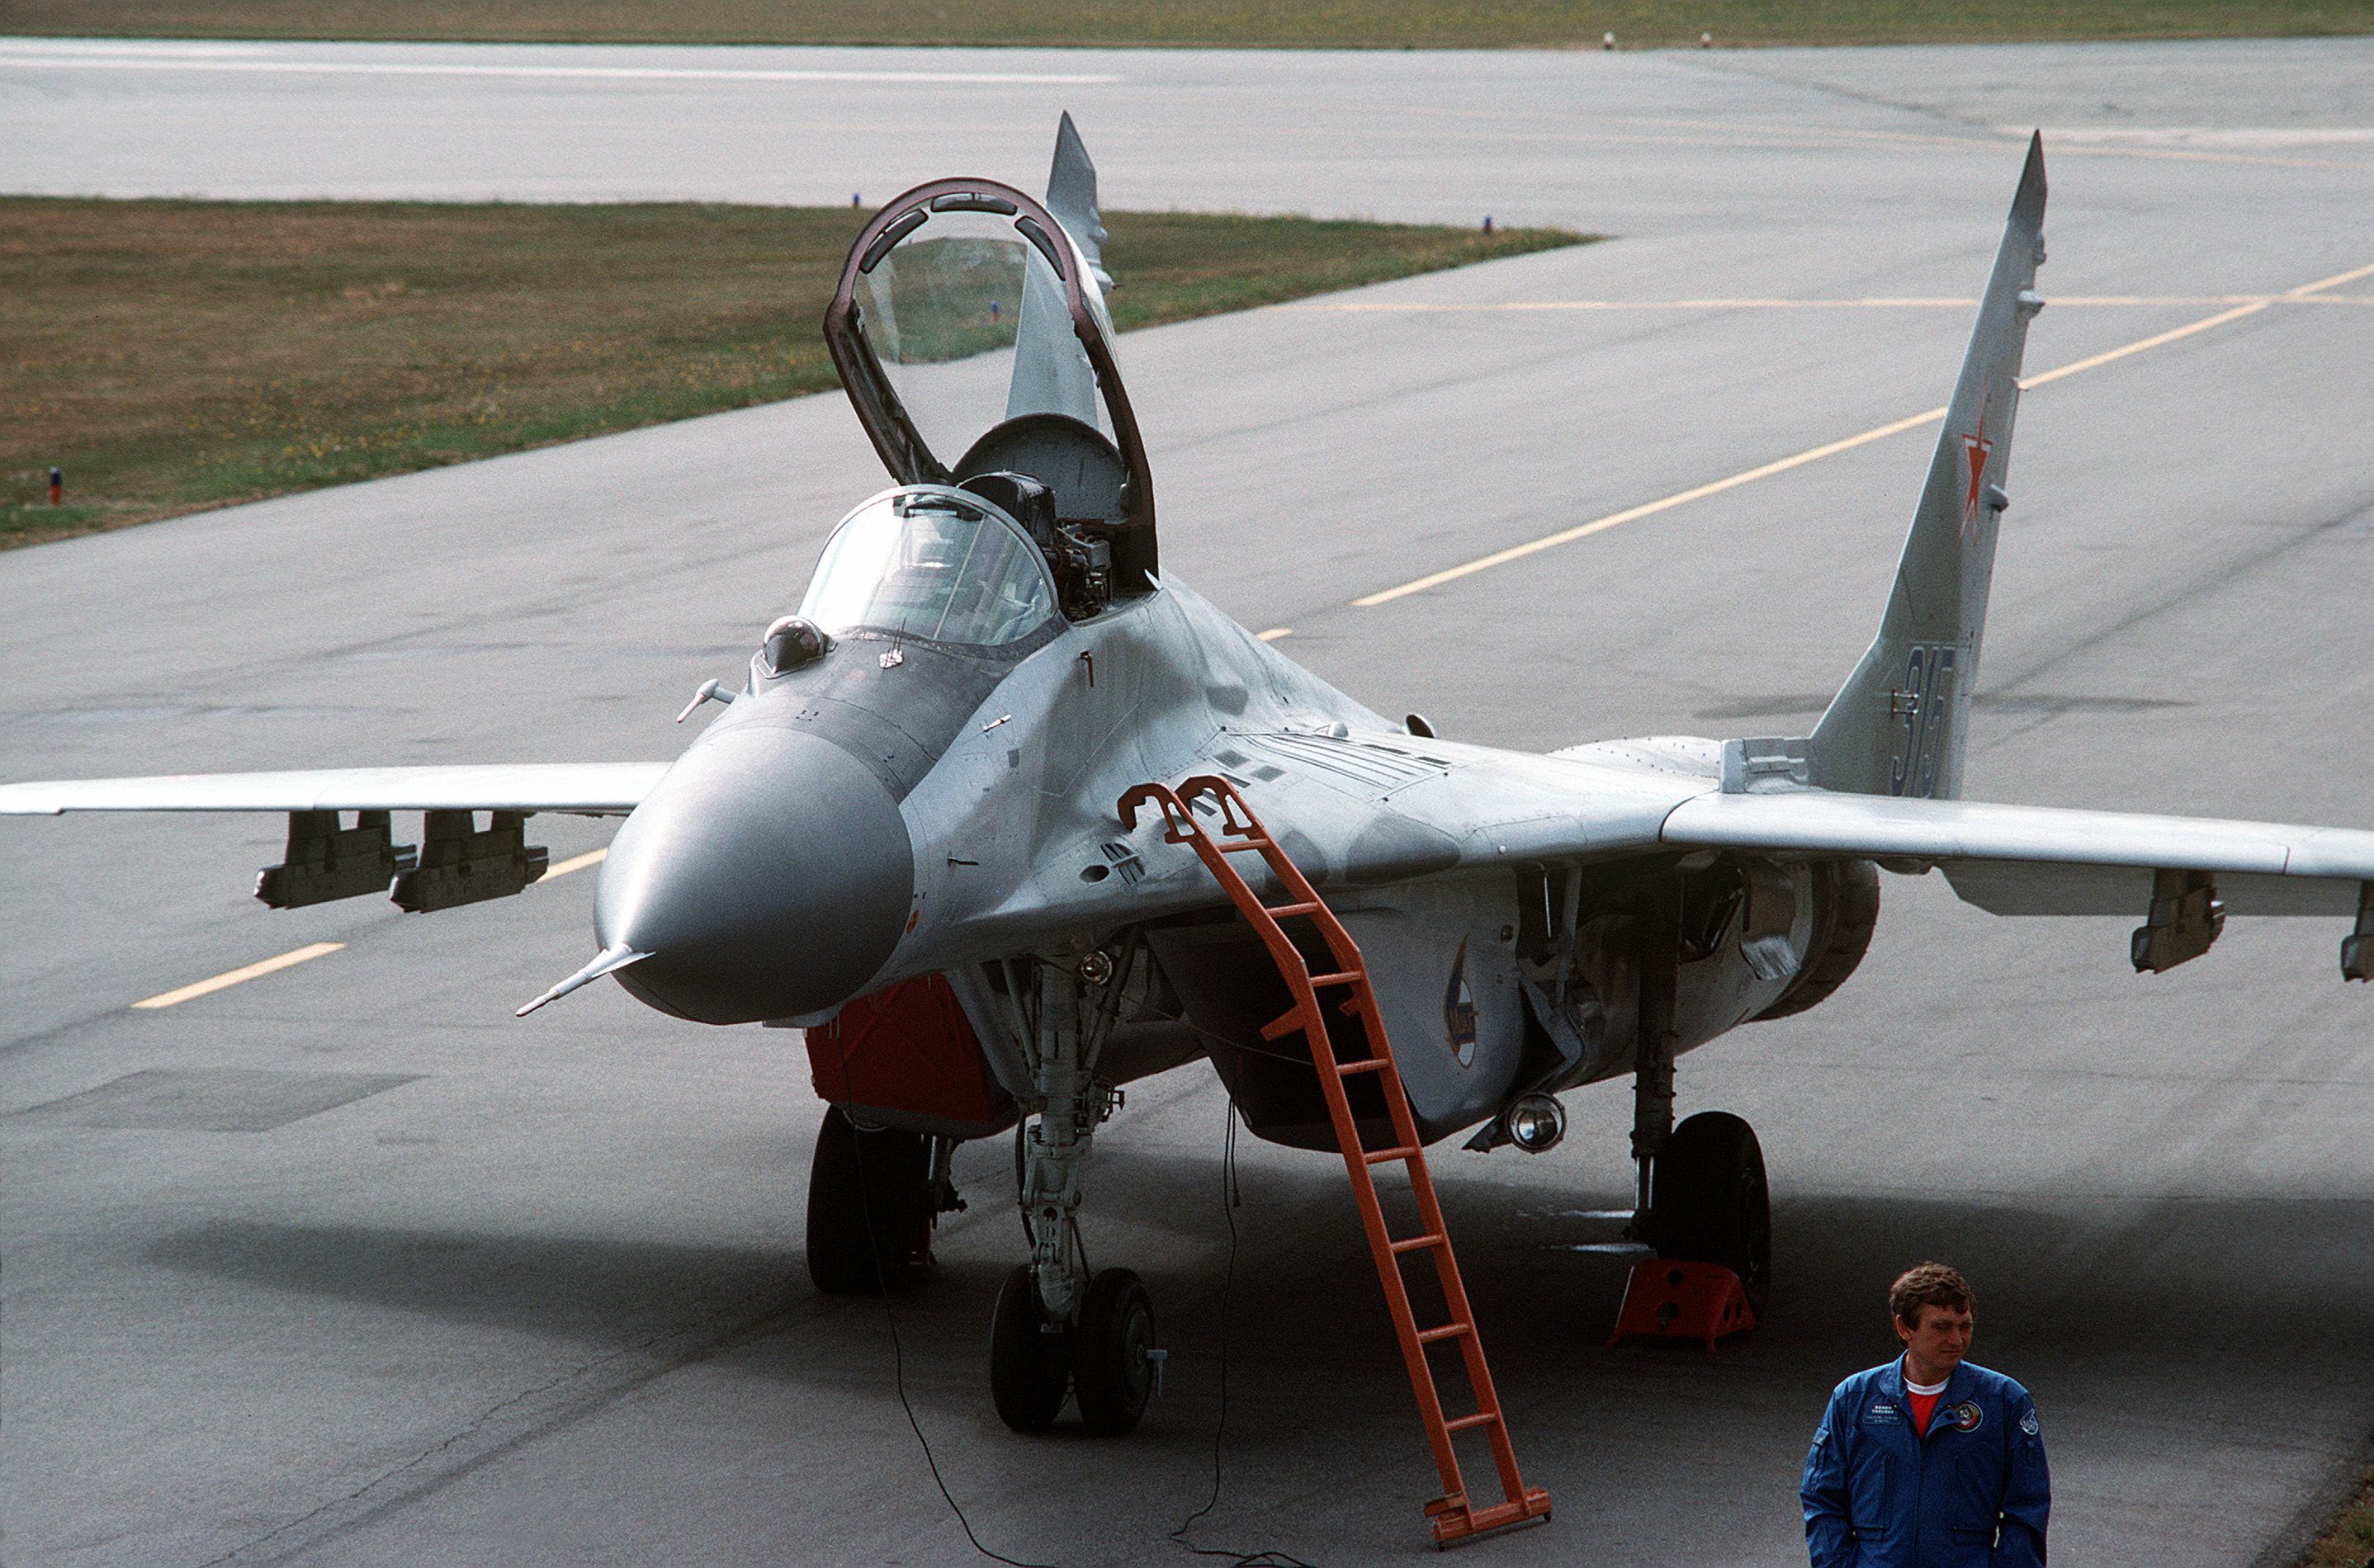 mig-29 catches fire on takeoff